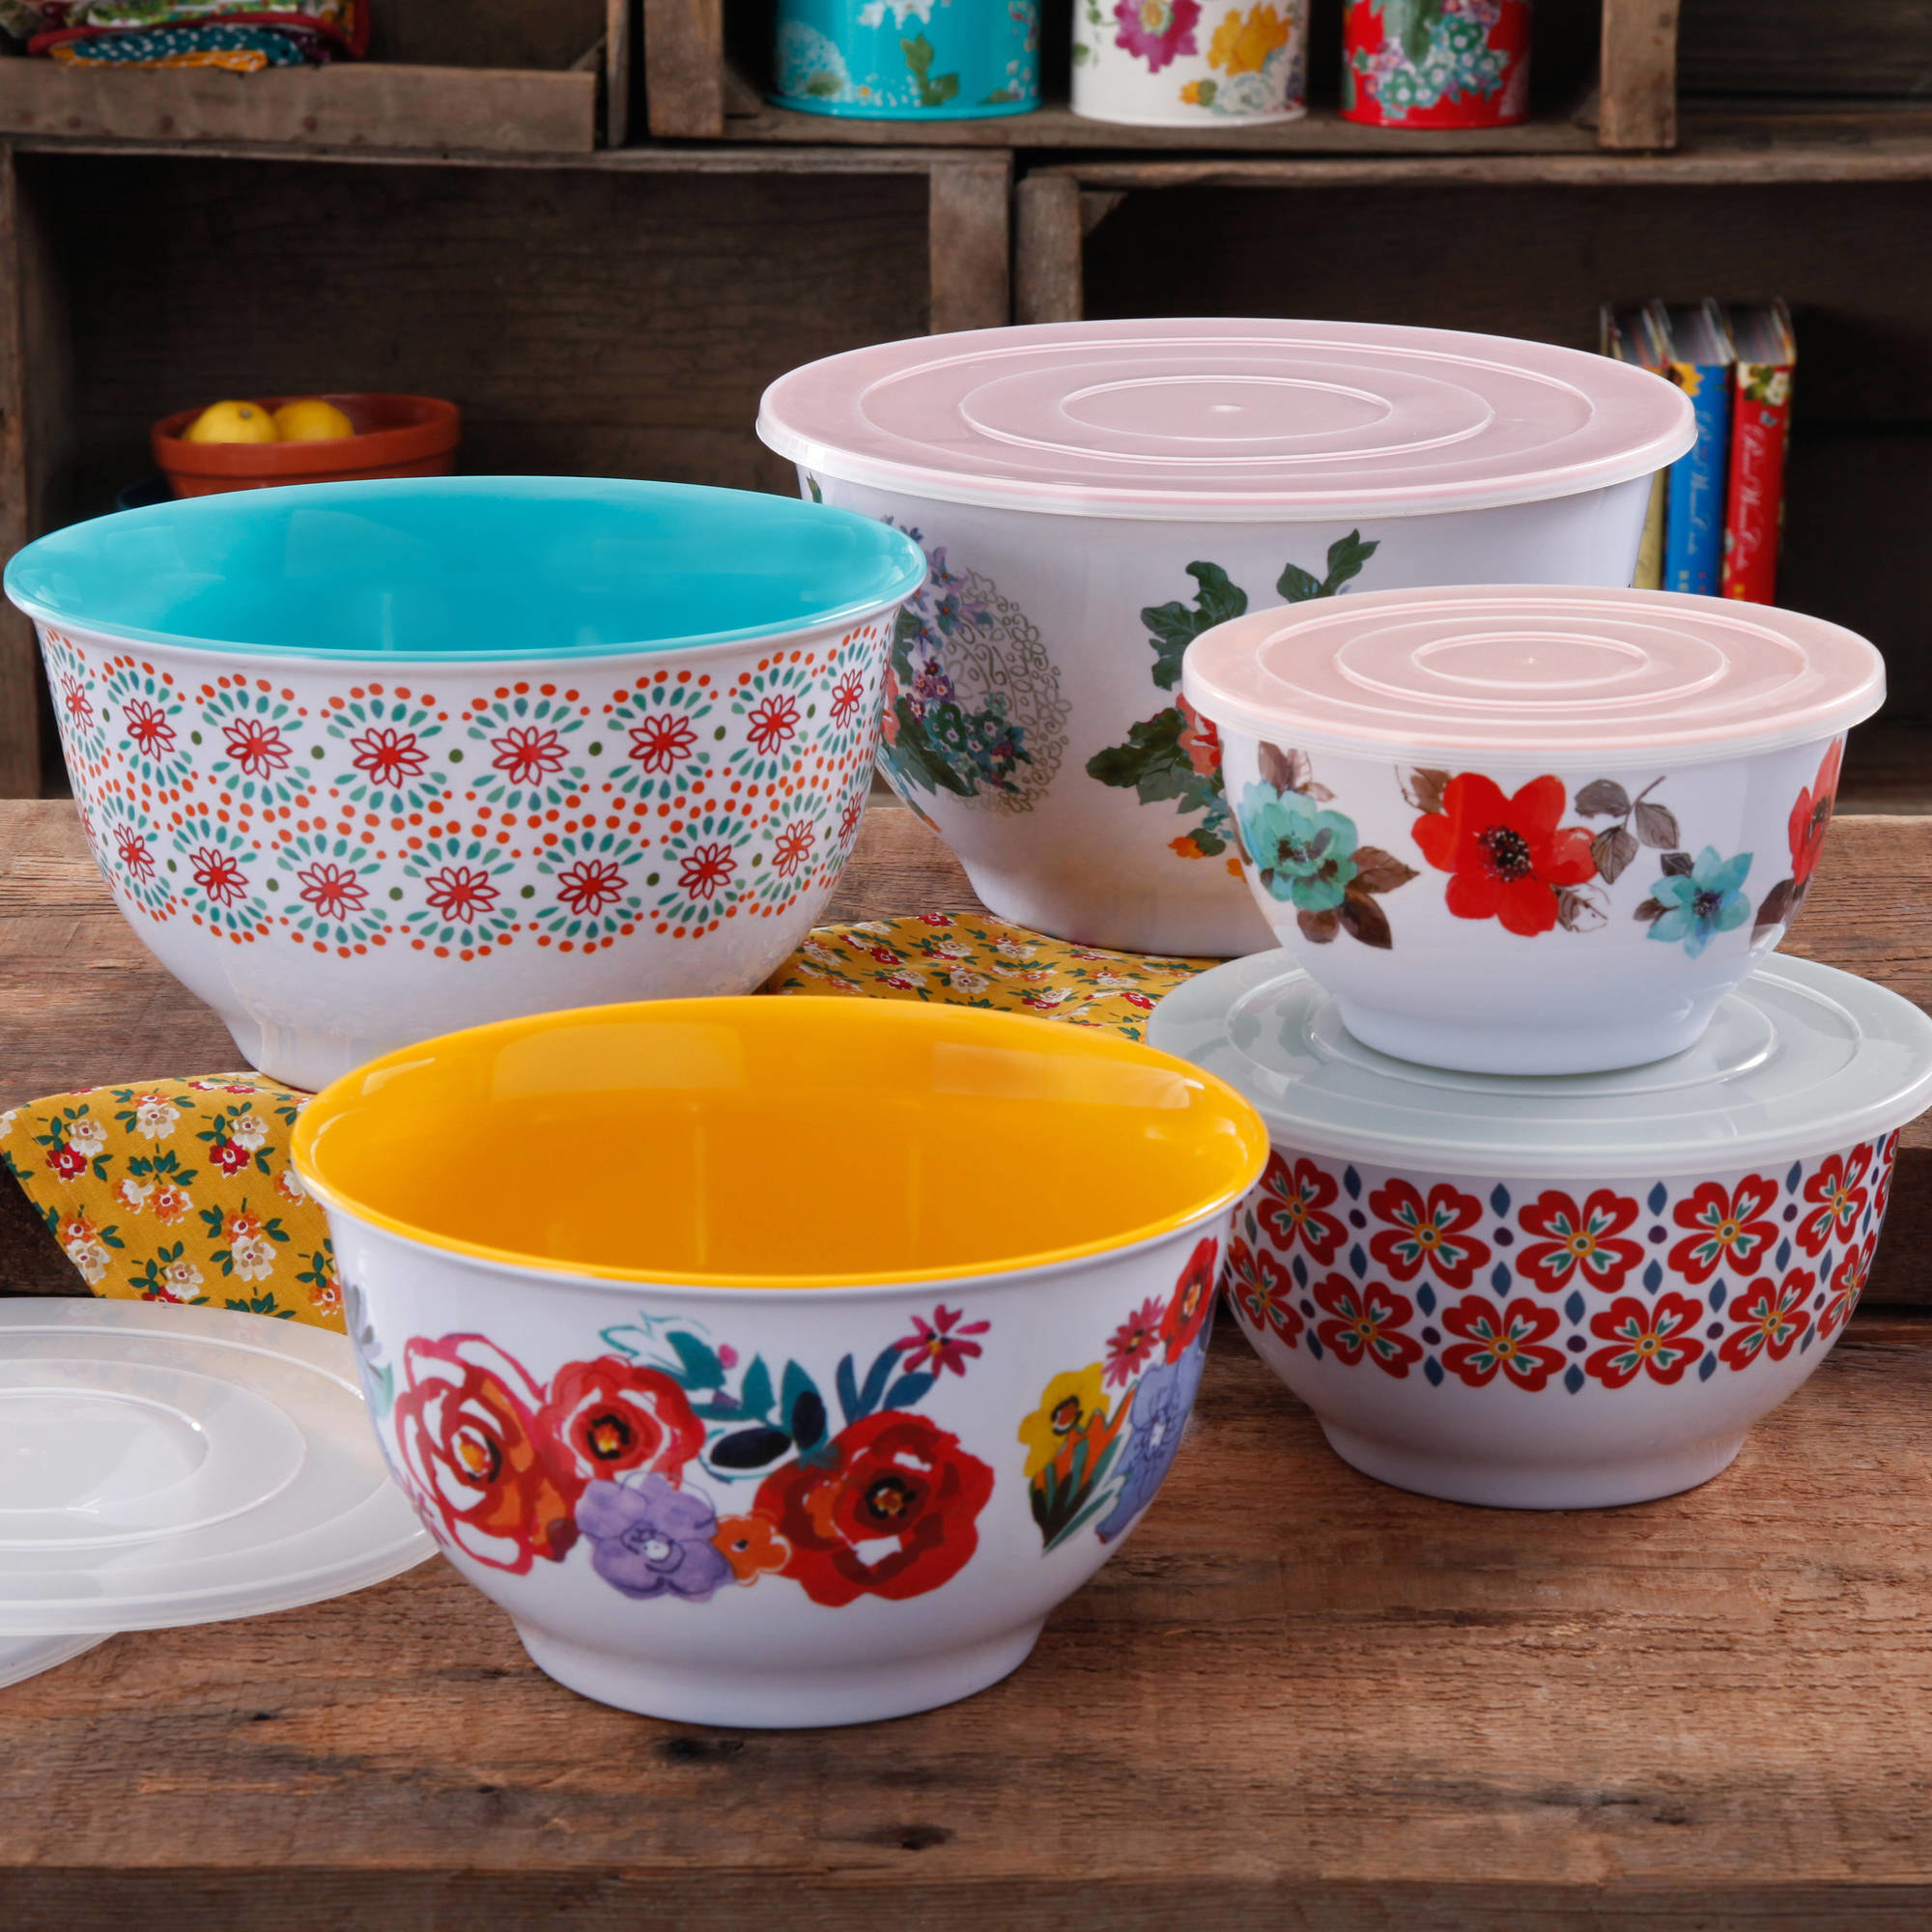 Colorful bowls with floral designs, including matching lids